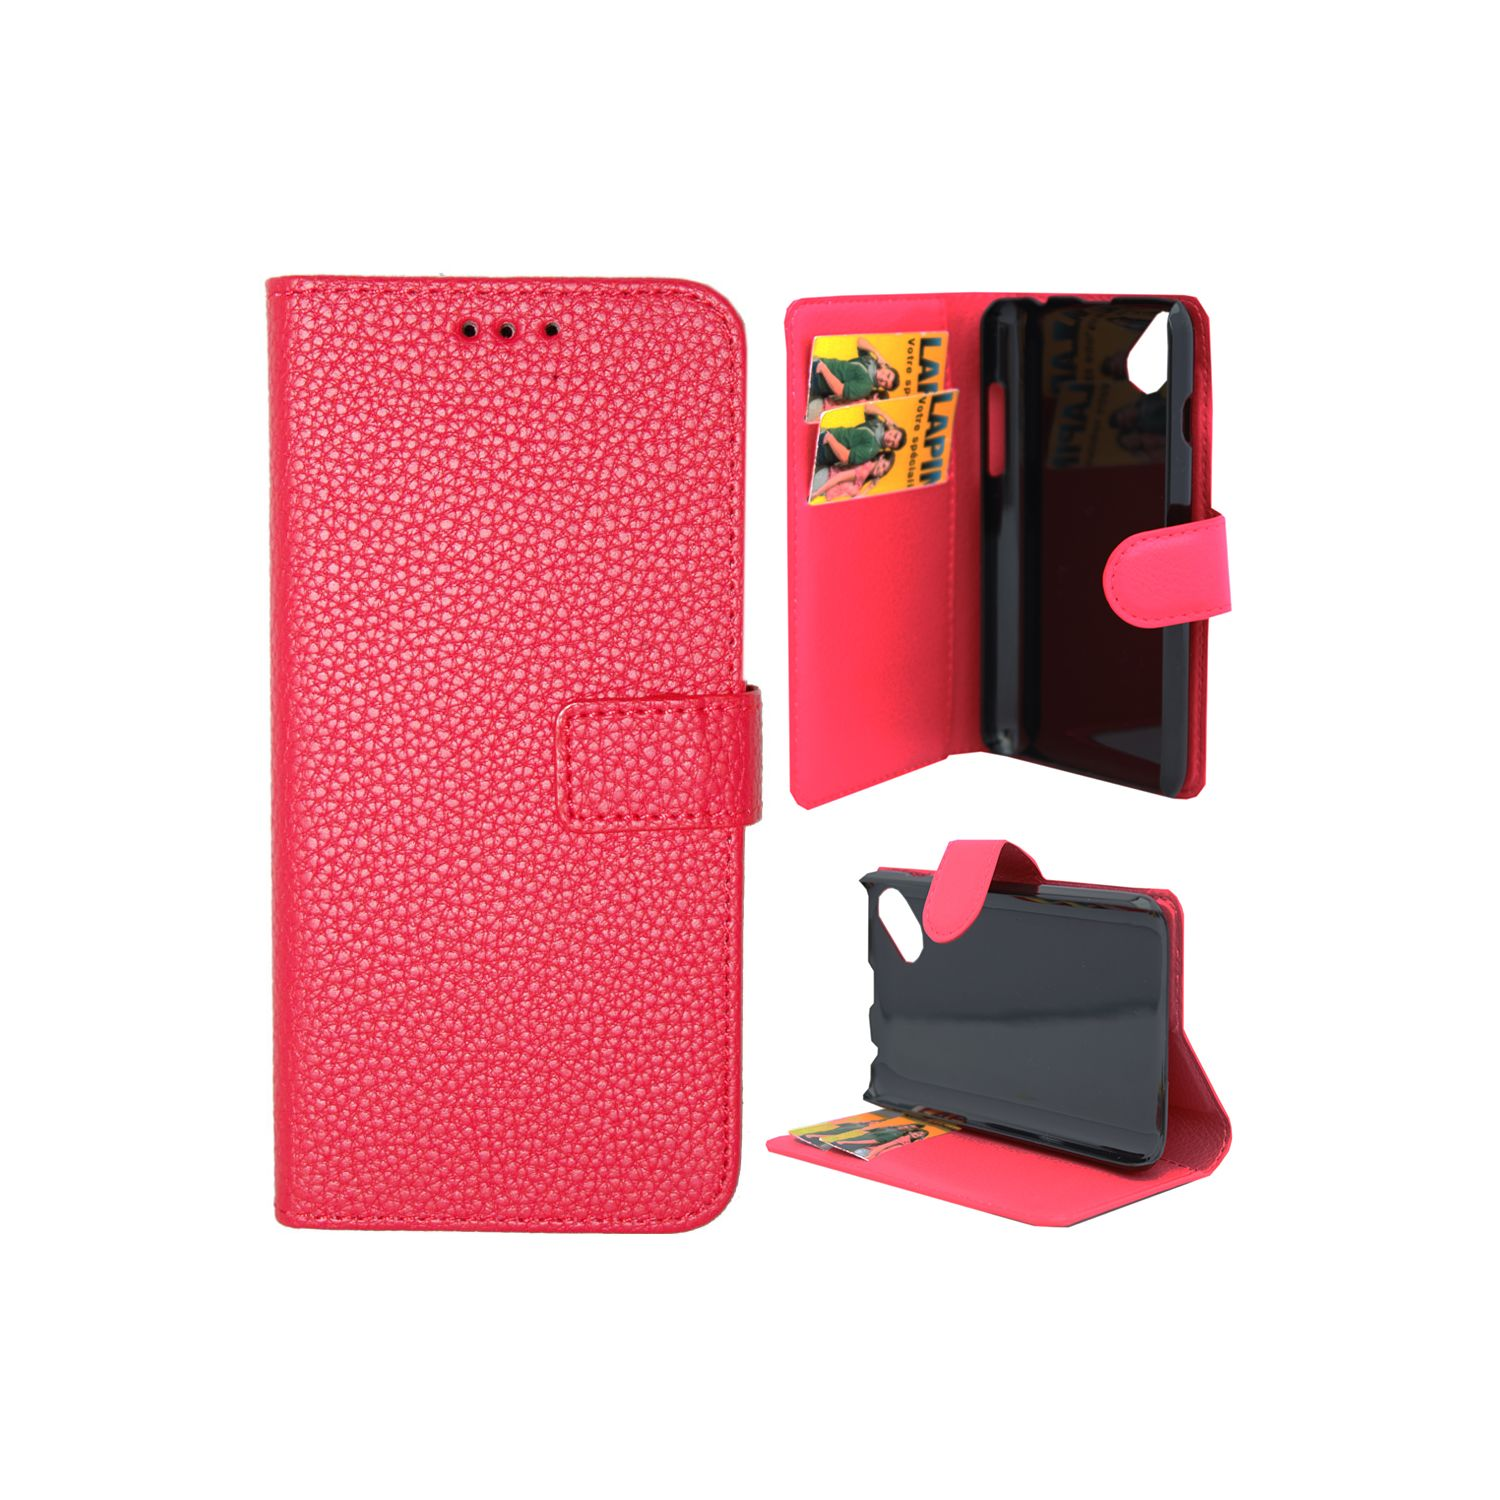 Lapinette etui housse portefeuille pour wiko sunny 2 for Housse wiko sunny 2